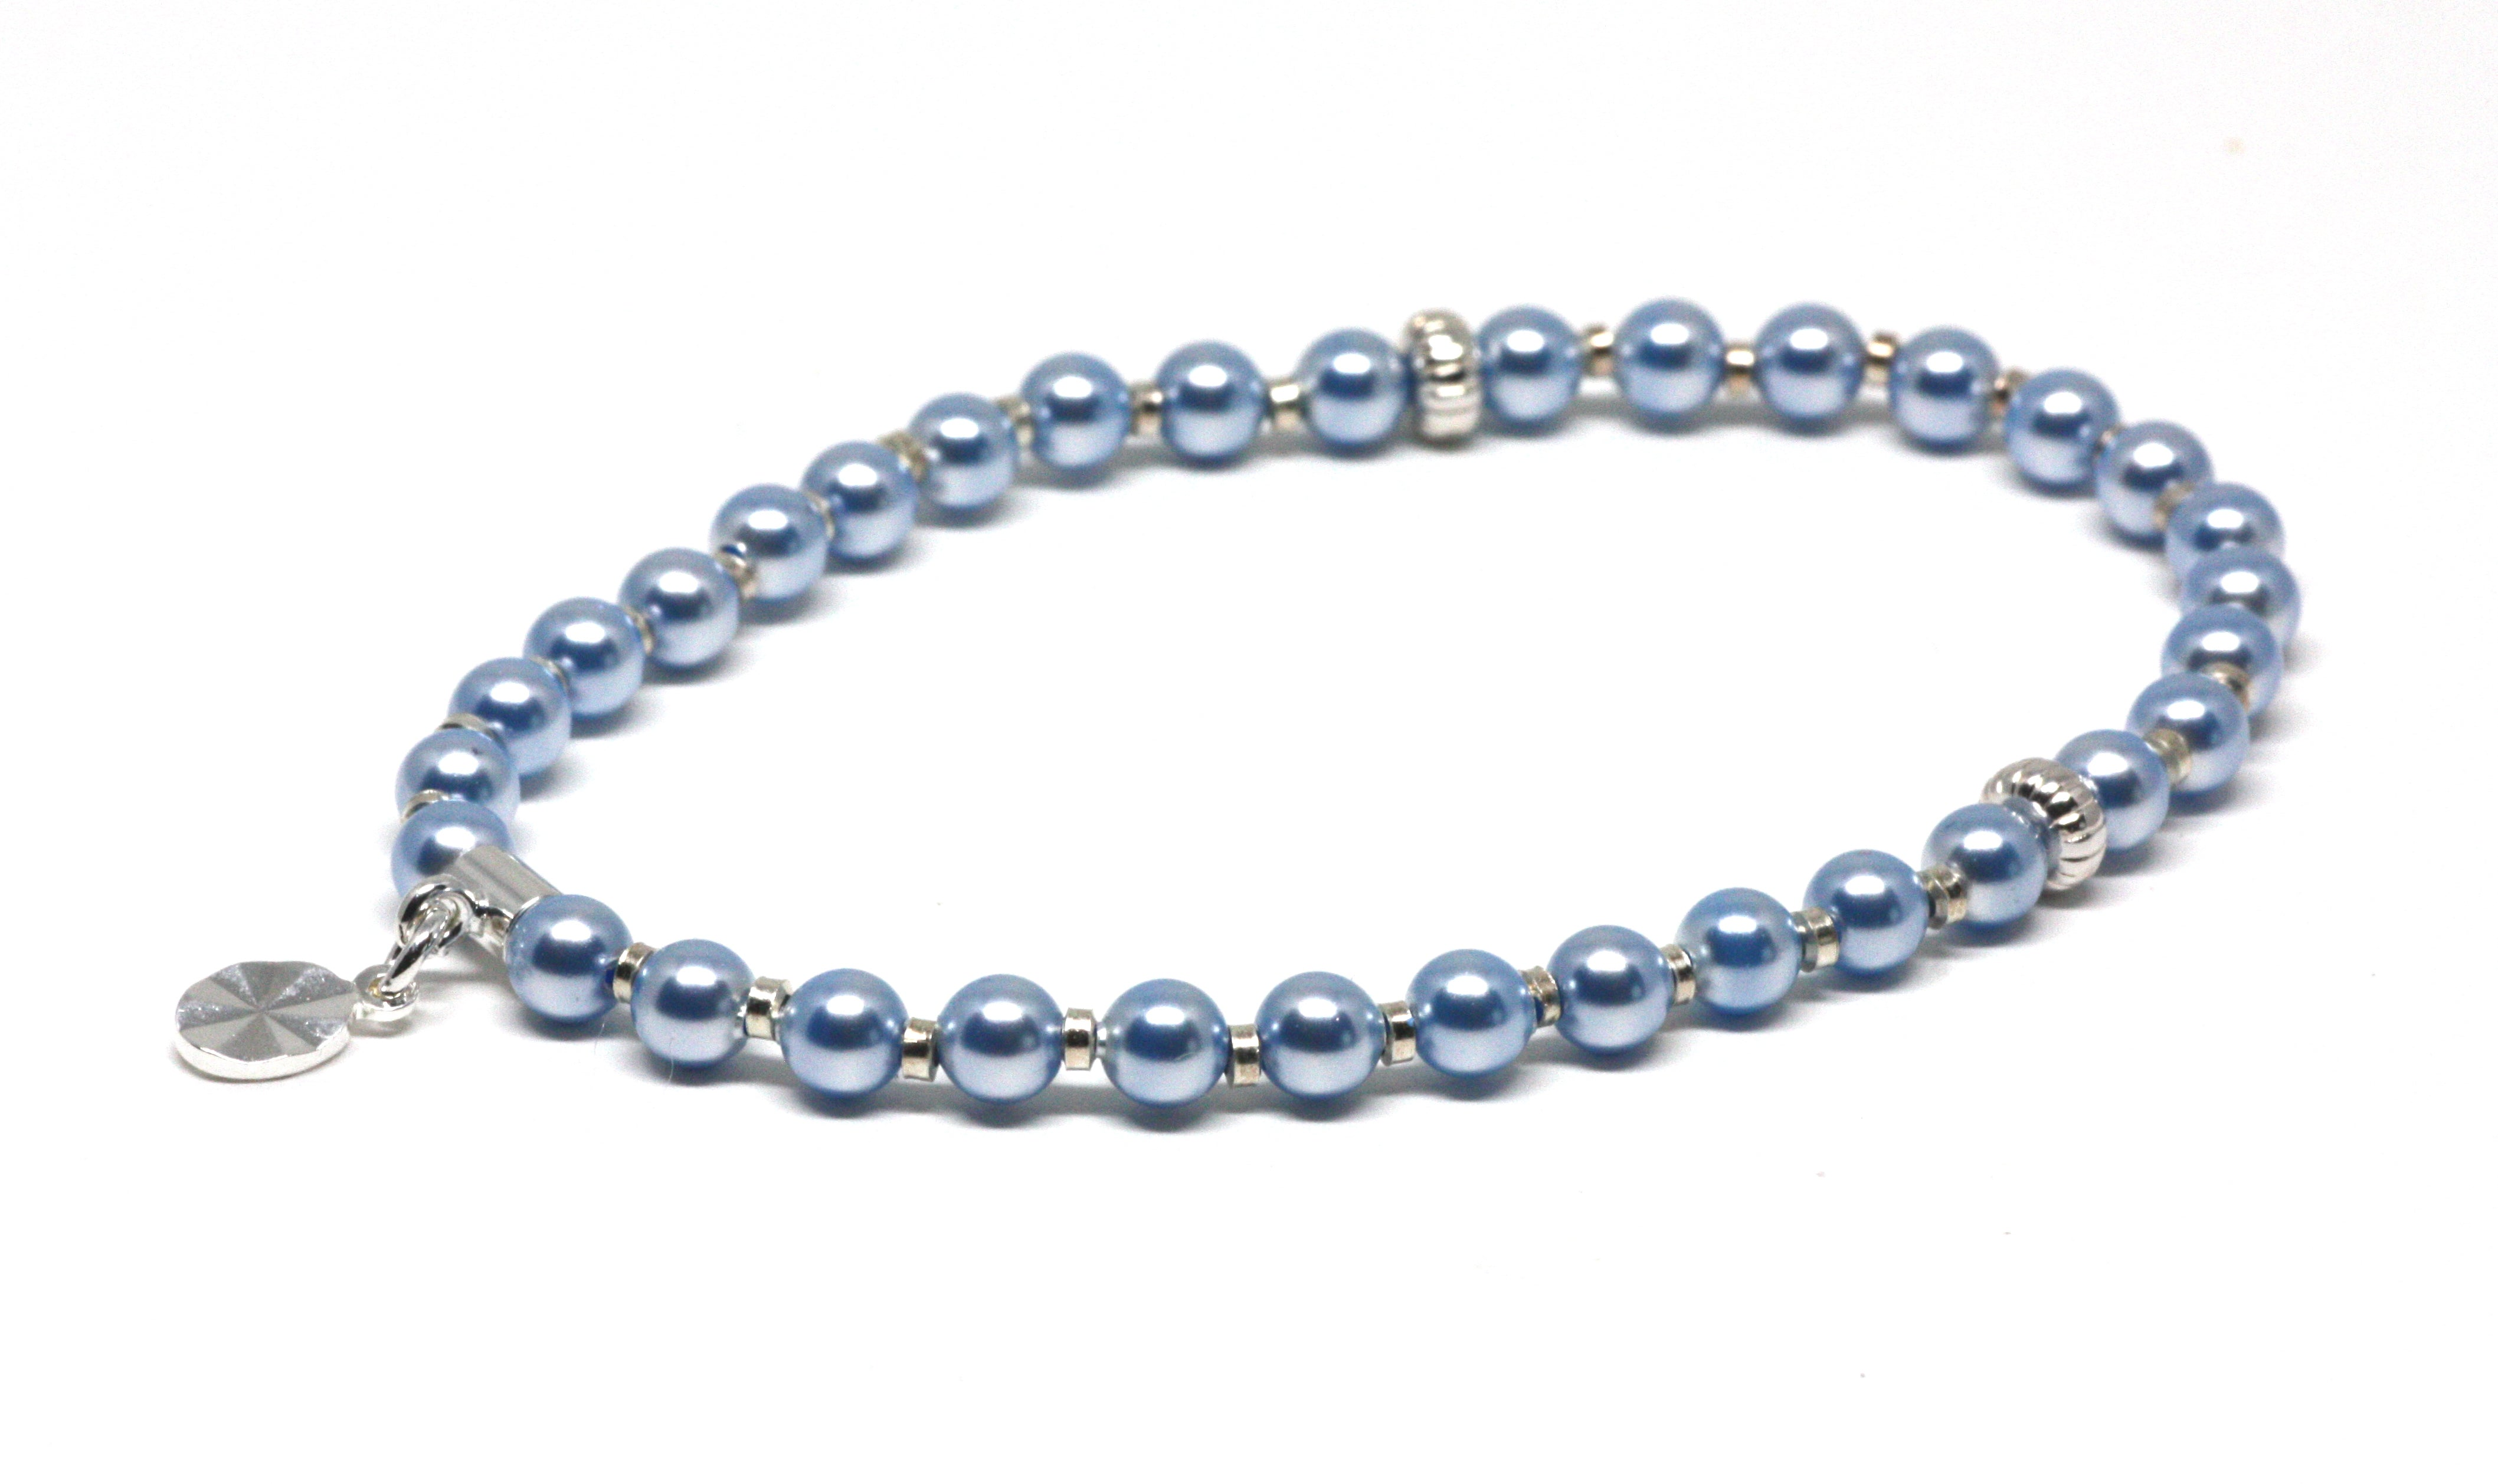 Baby Blue Pearl and Silver Wrist Tasbih